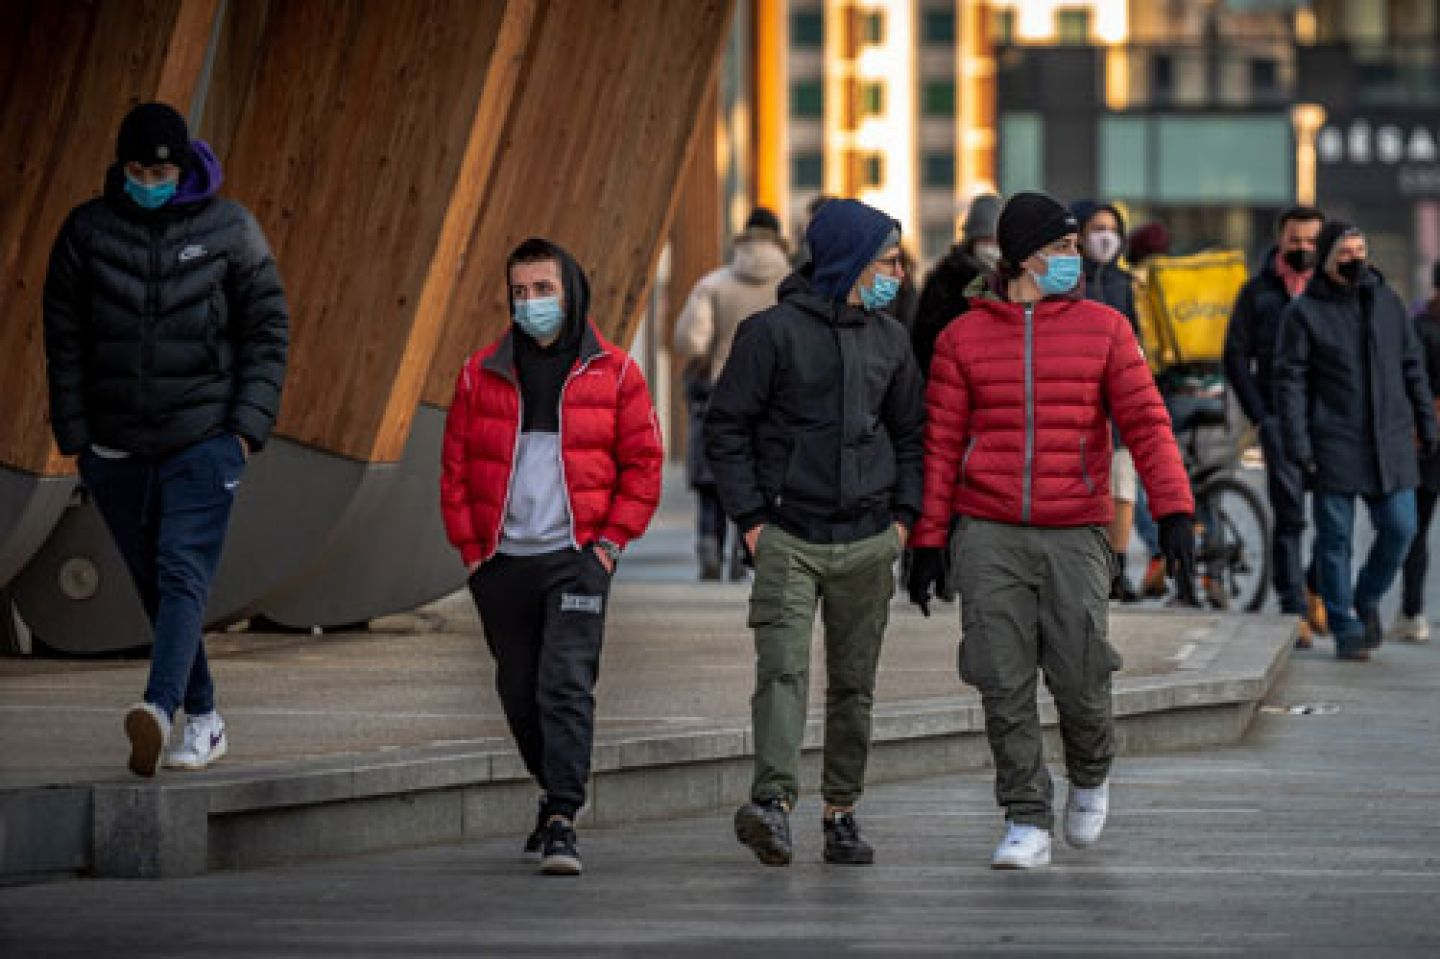 People wearing masks during the Covid-19 pandemic